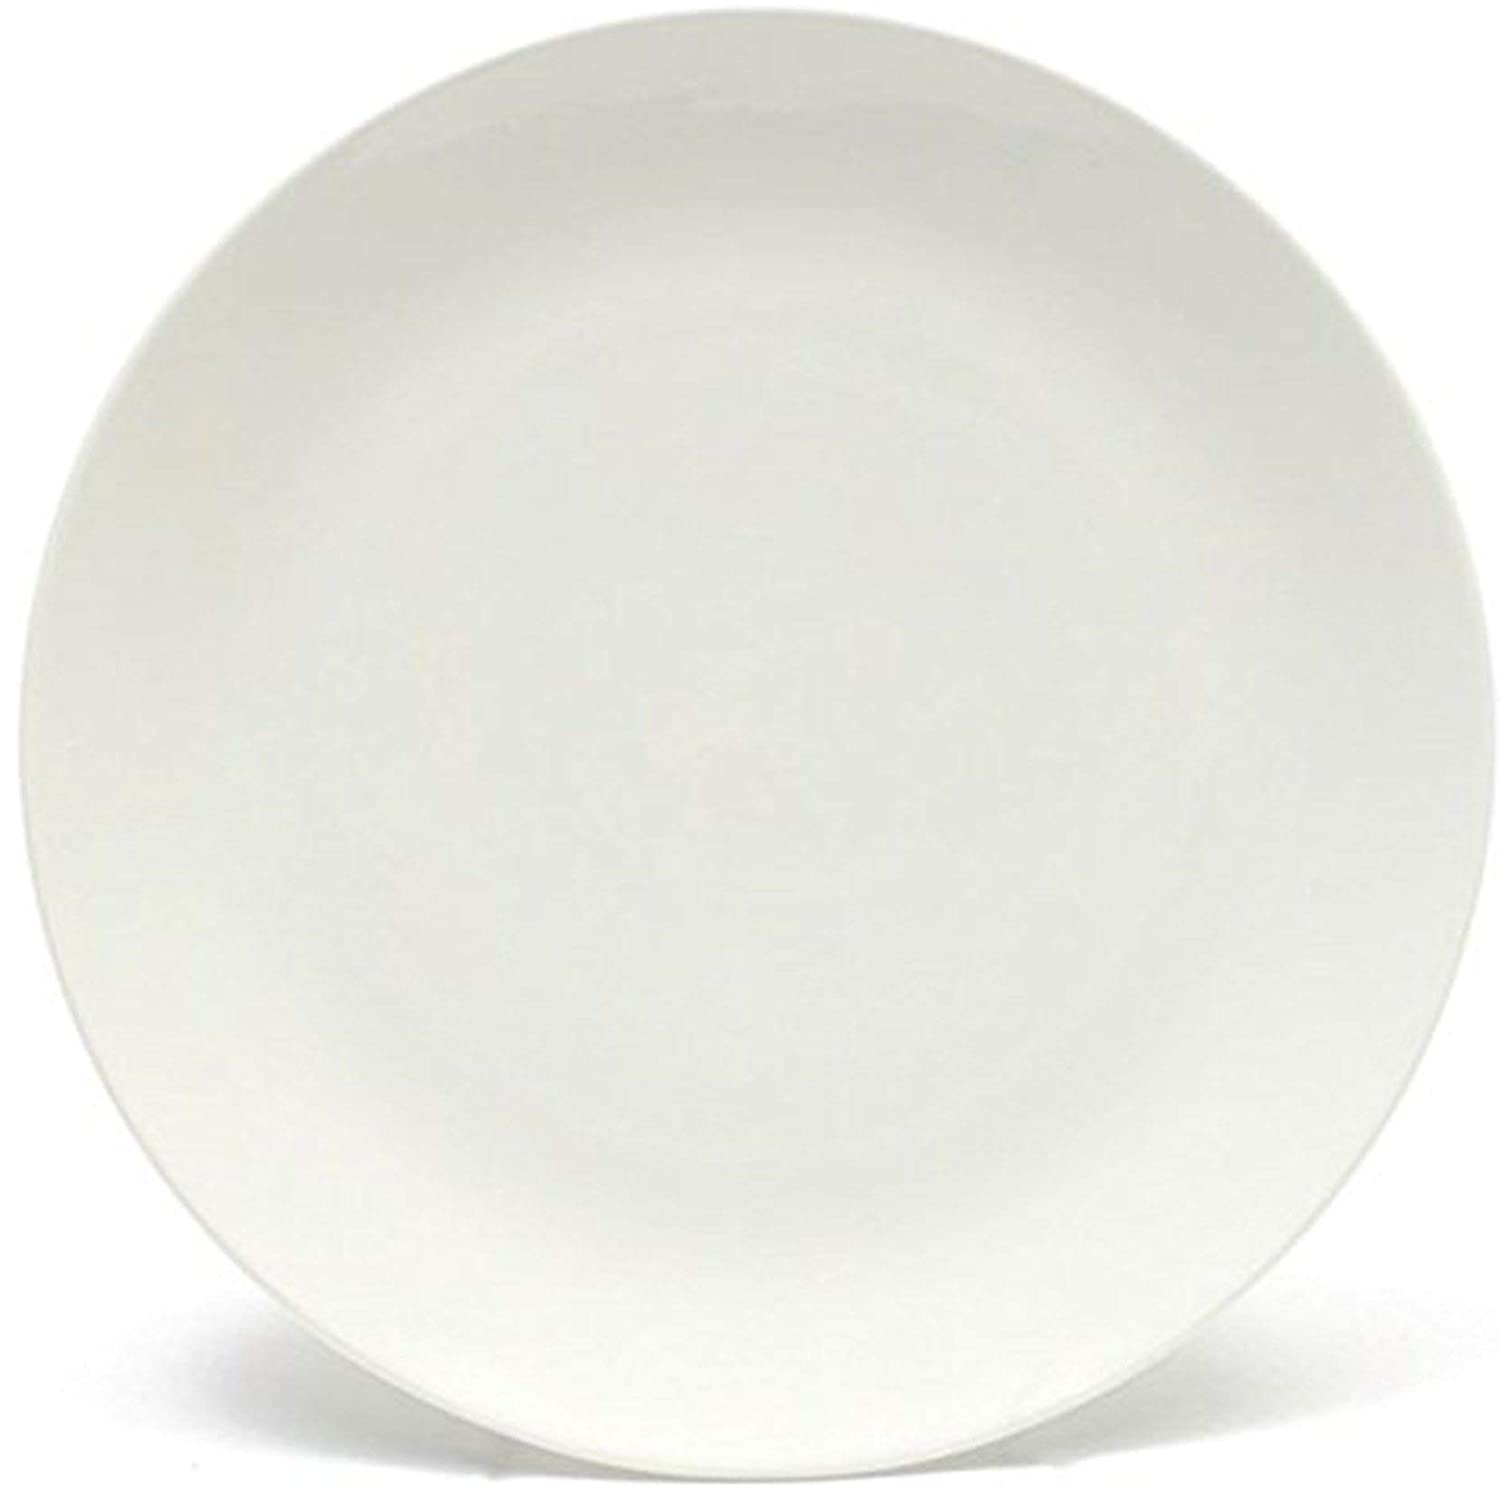 Melange Coupe 6-Piece Porcelain Dinner Plate Set | Service for 6 | Microwave, Dishwasher & Oven Safe | Dinner Plate (6 Pieces) | Color: White